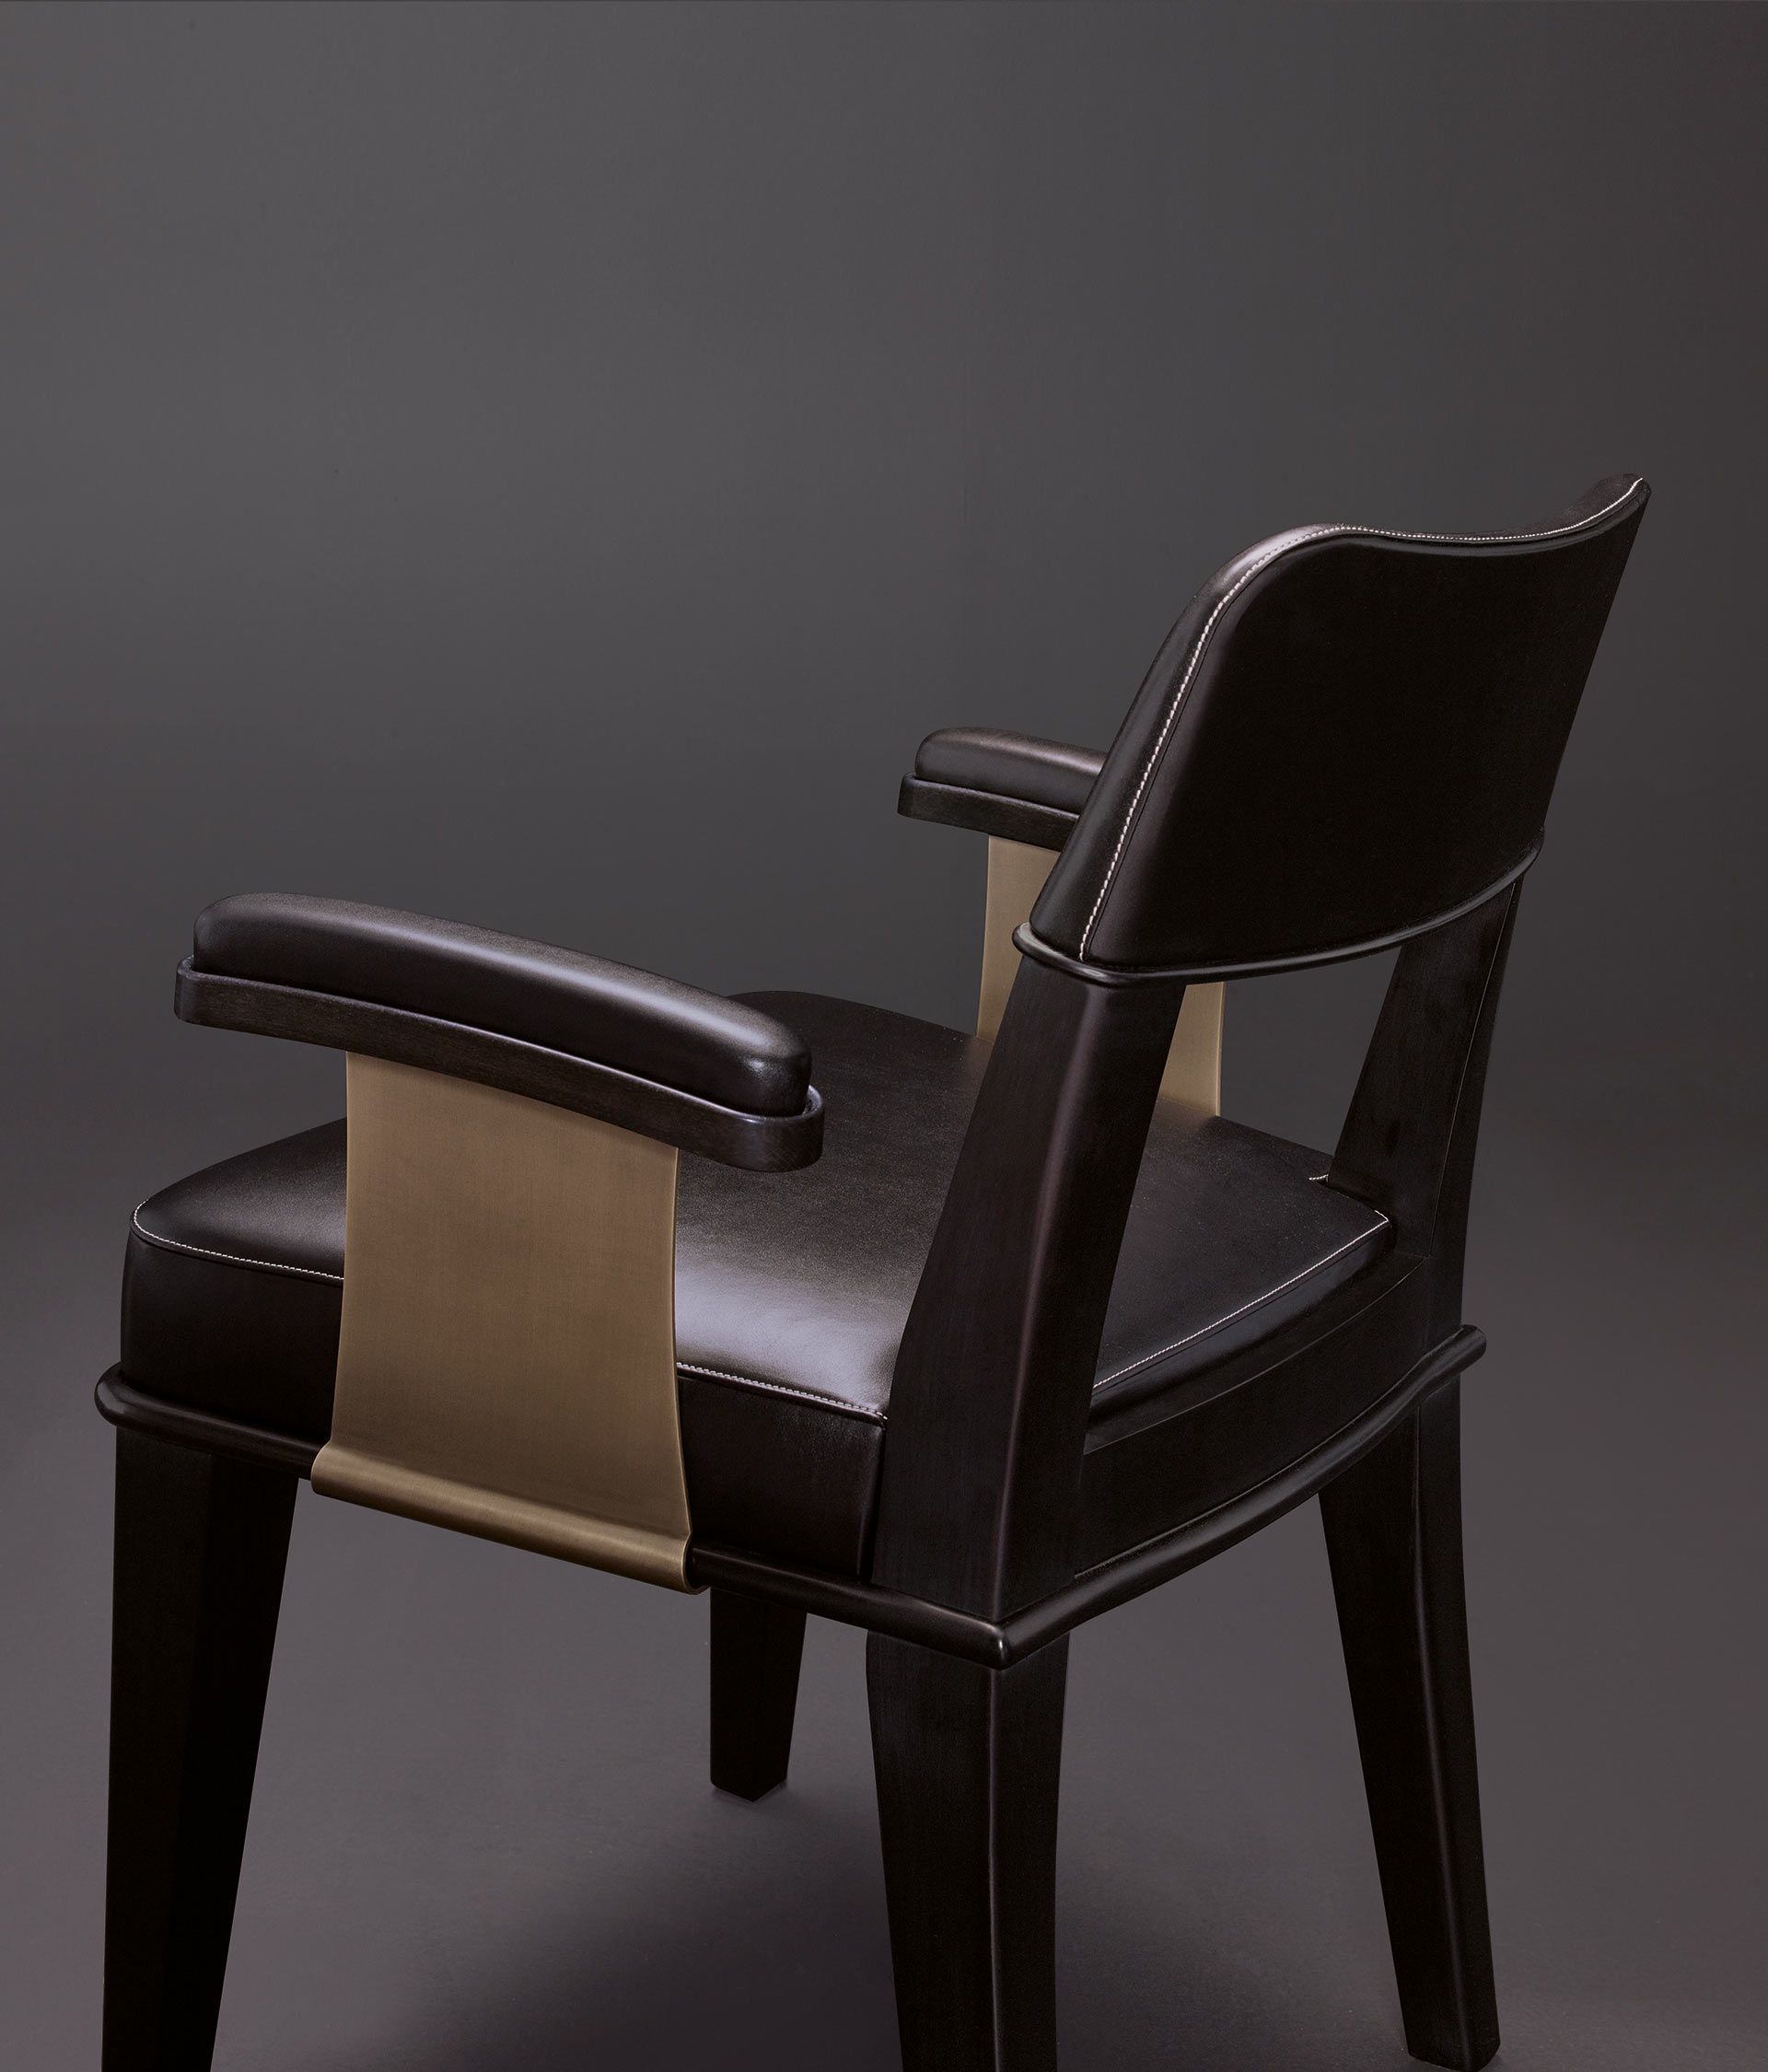 Detail of Vespertine, a wooden dining chair with leather seat and back and with armrests with bronze details, from Promemoria's Night Tales collection | Promemoria